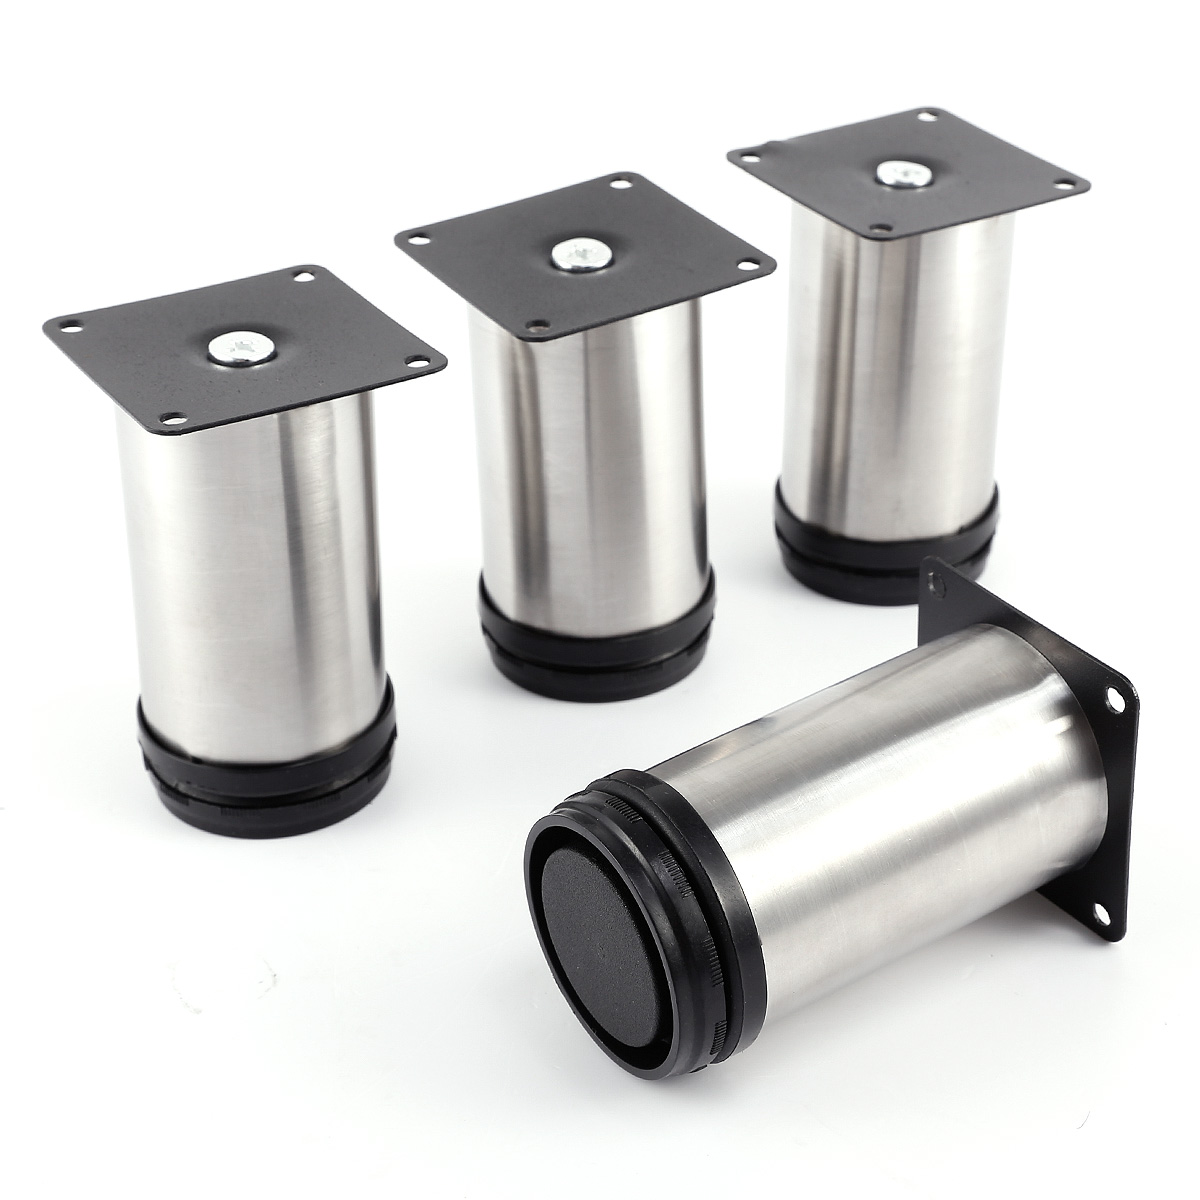 Adjustable Kitchen Cabinet Legs: 4 Pcs Cabinet Metal Legs Adjustable Stainless Steel